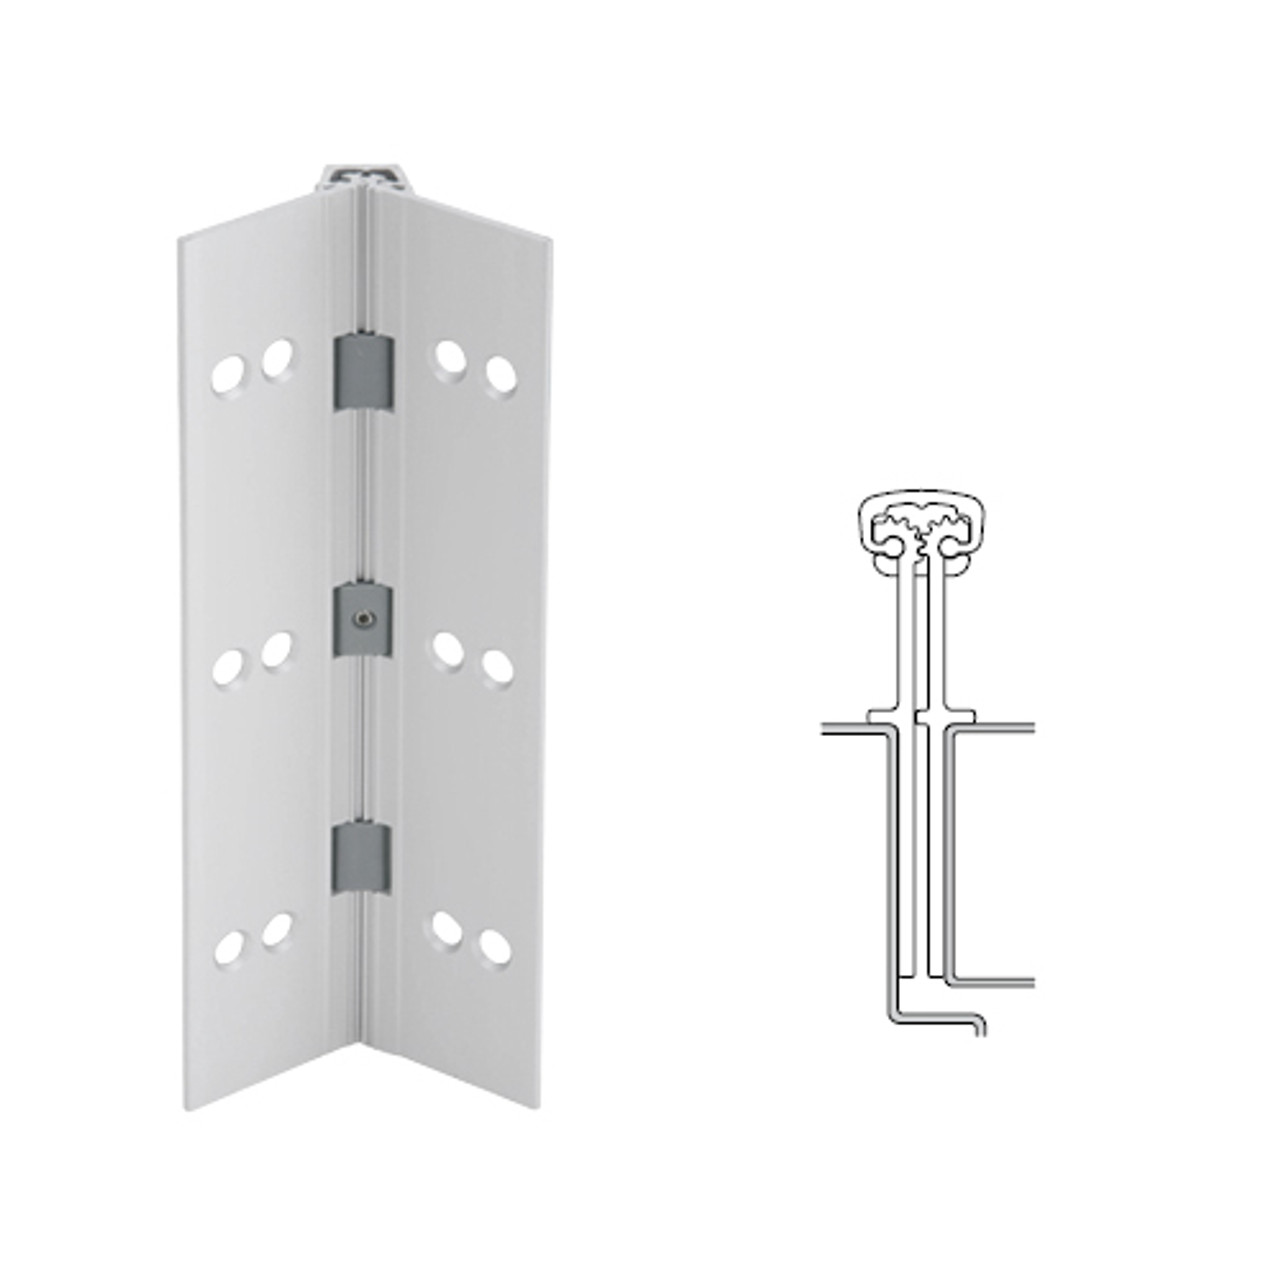 040XY-US28-85-TFWD IVES Full Mortise Continuous Geared Hinges with Thread Forming Screws in Satin Aluminum